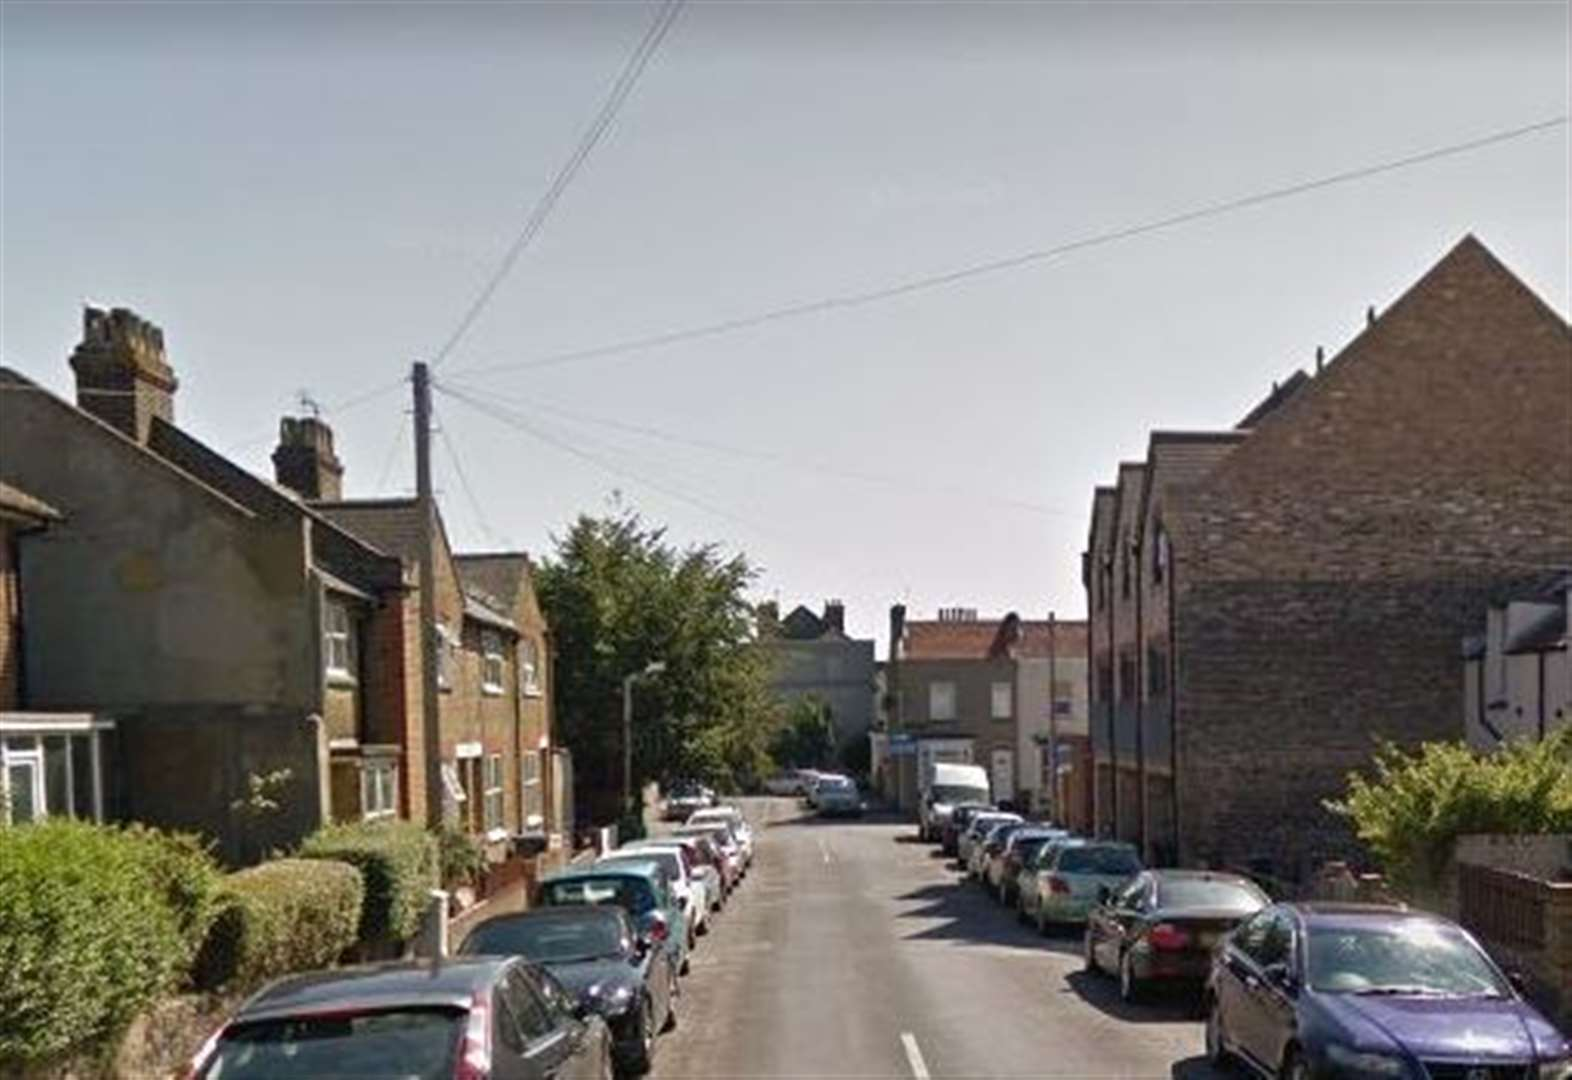 Man 'covered in blood' after stabbing